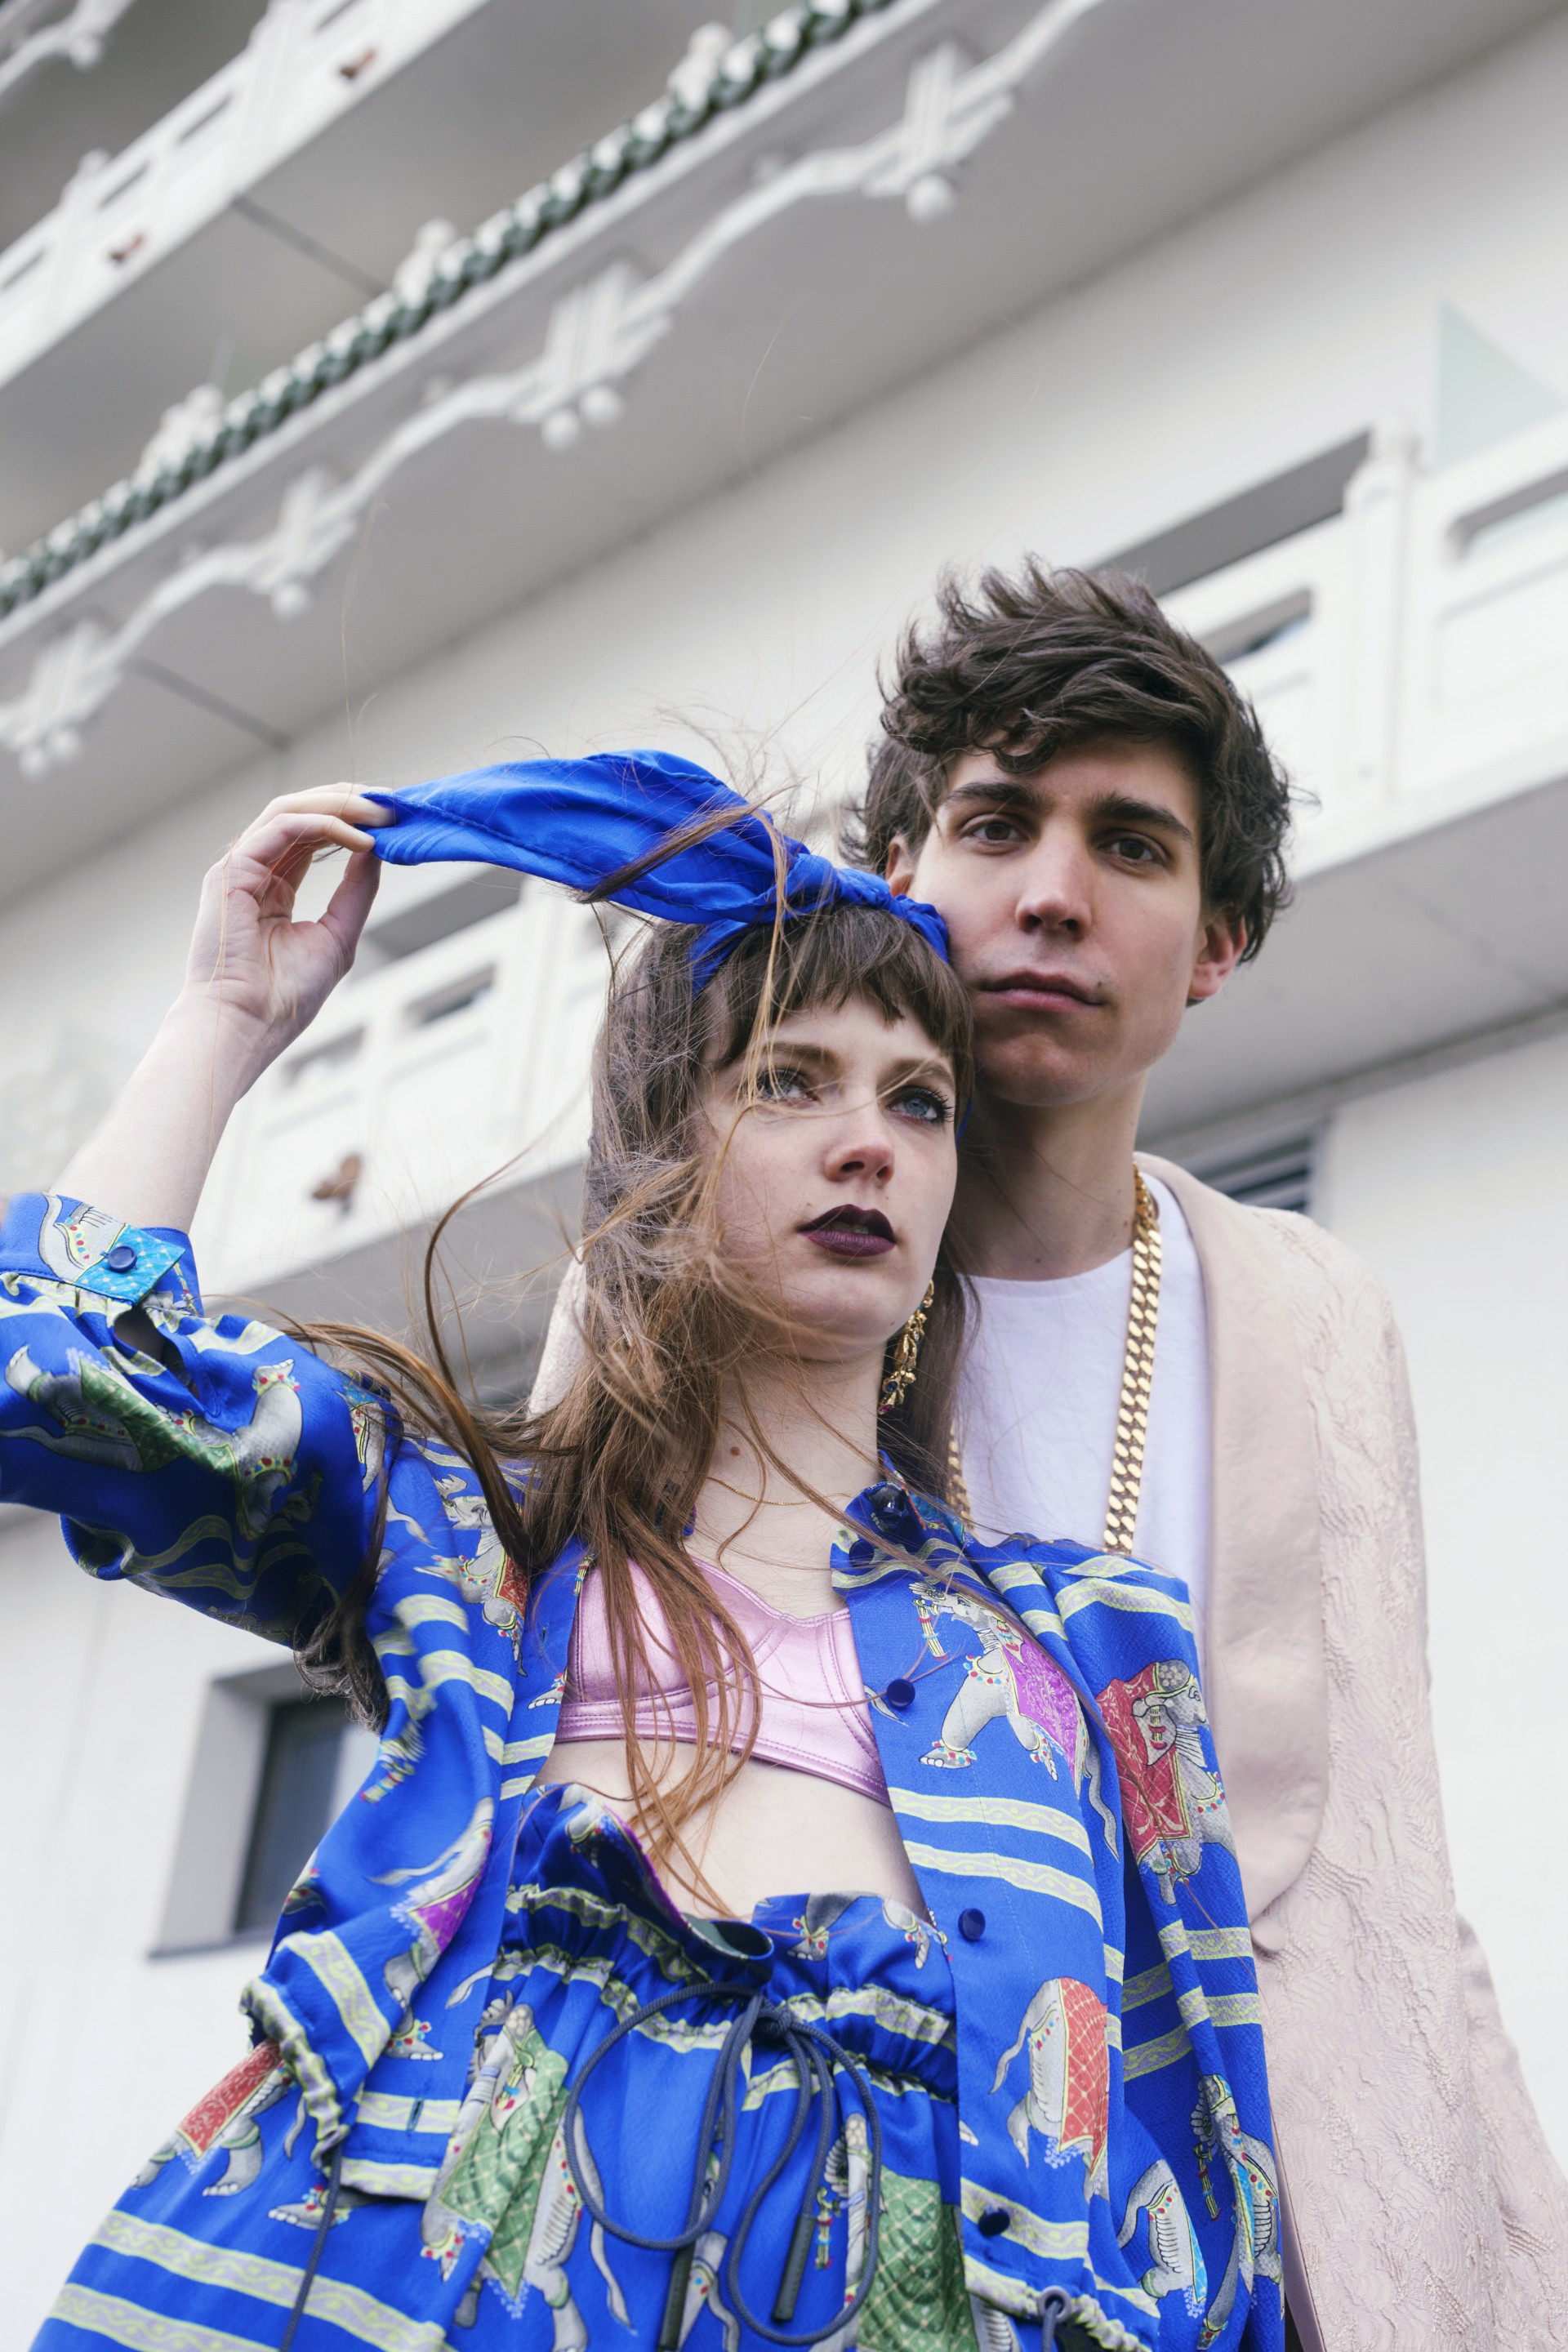 The Pirouettes Gallery